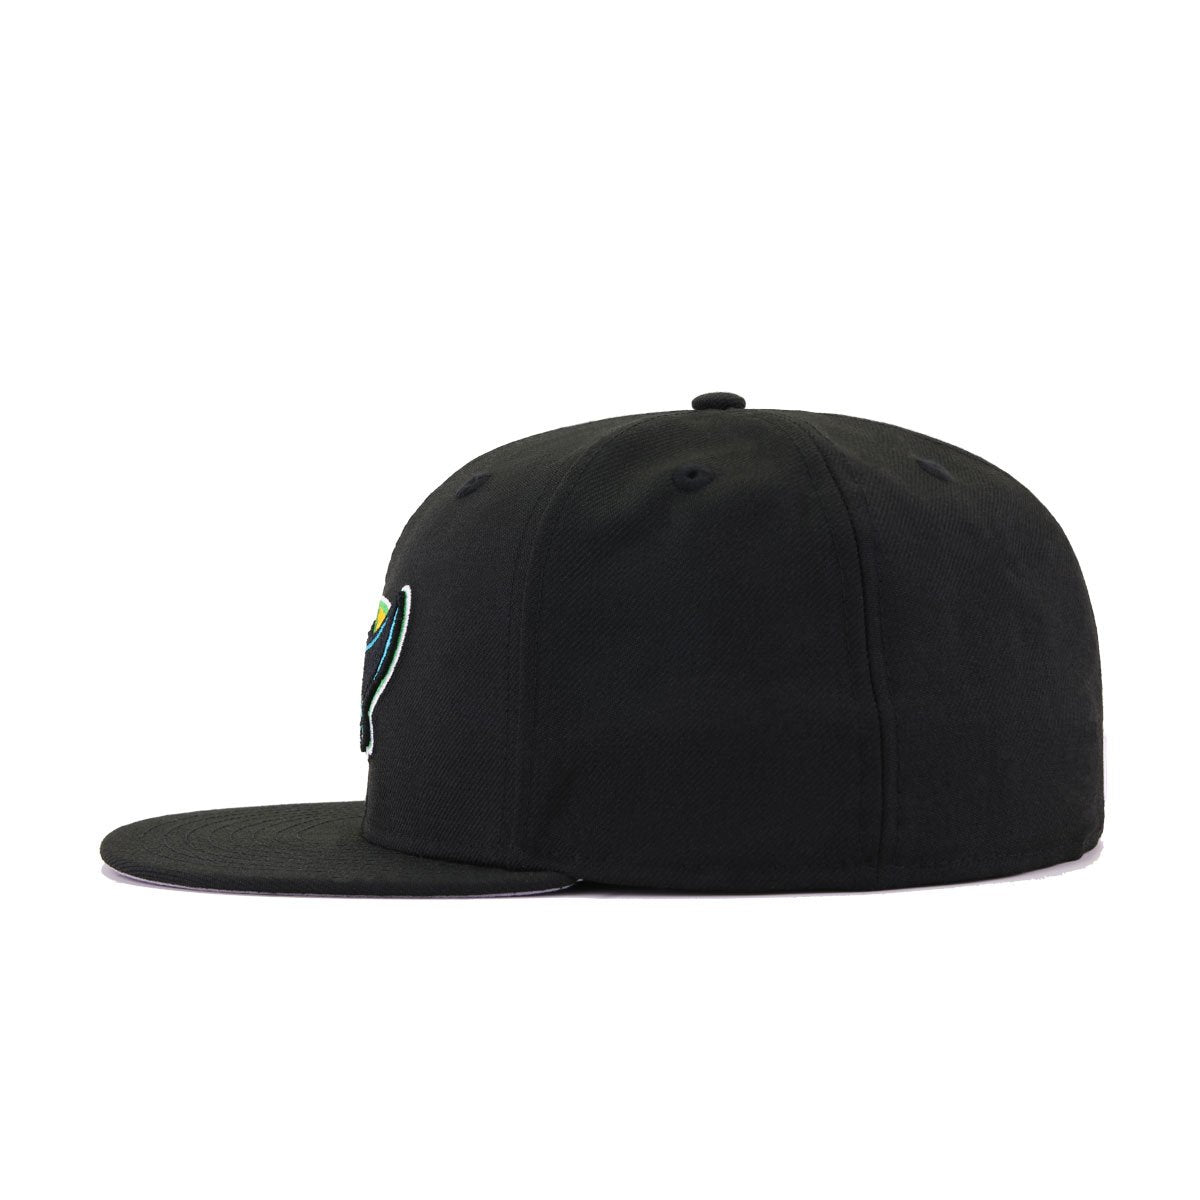 Tampa Bay Rays Black Alternate Cooperstown New Era 59Fifty Fitted